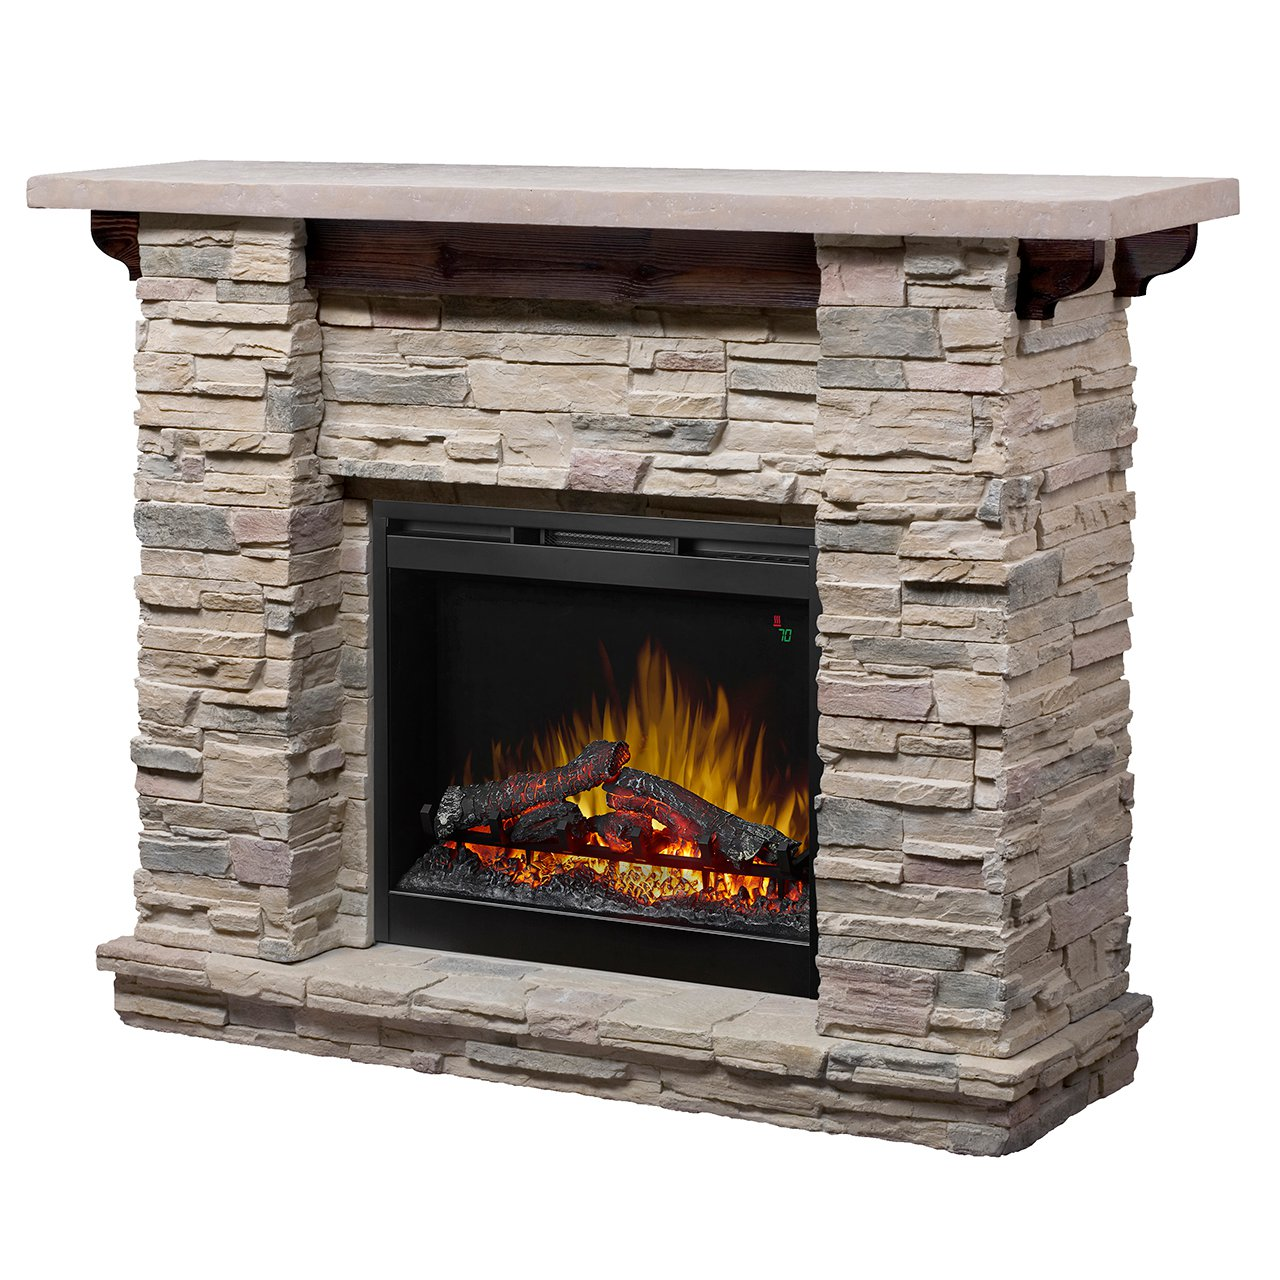 Corner Electric Fireplaces Home Depot Dimplex Featherston Gds26-1152lr 26′ Electric Fireplace